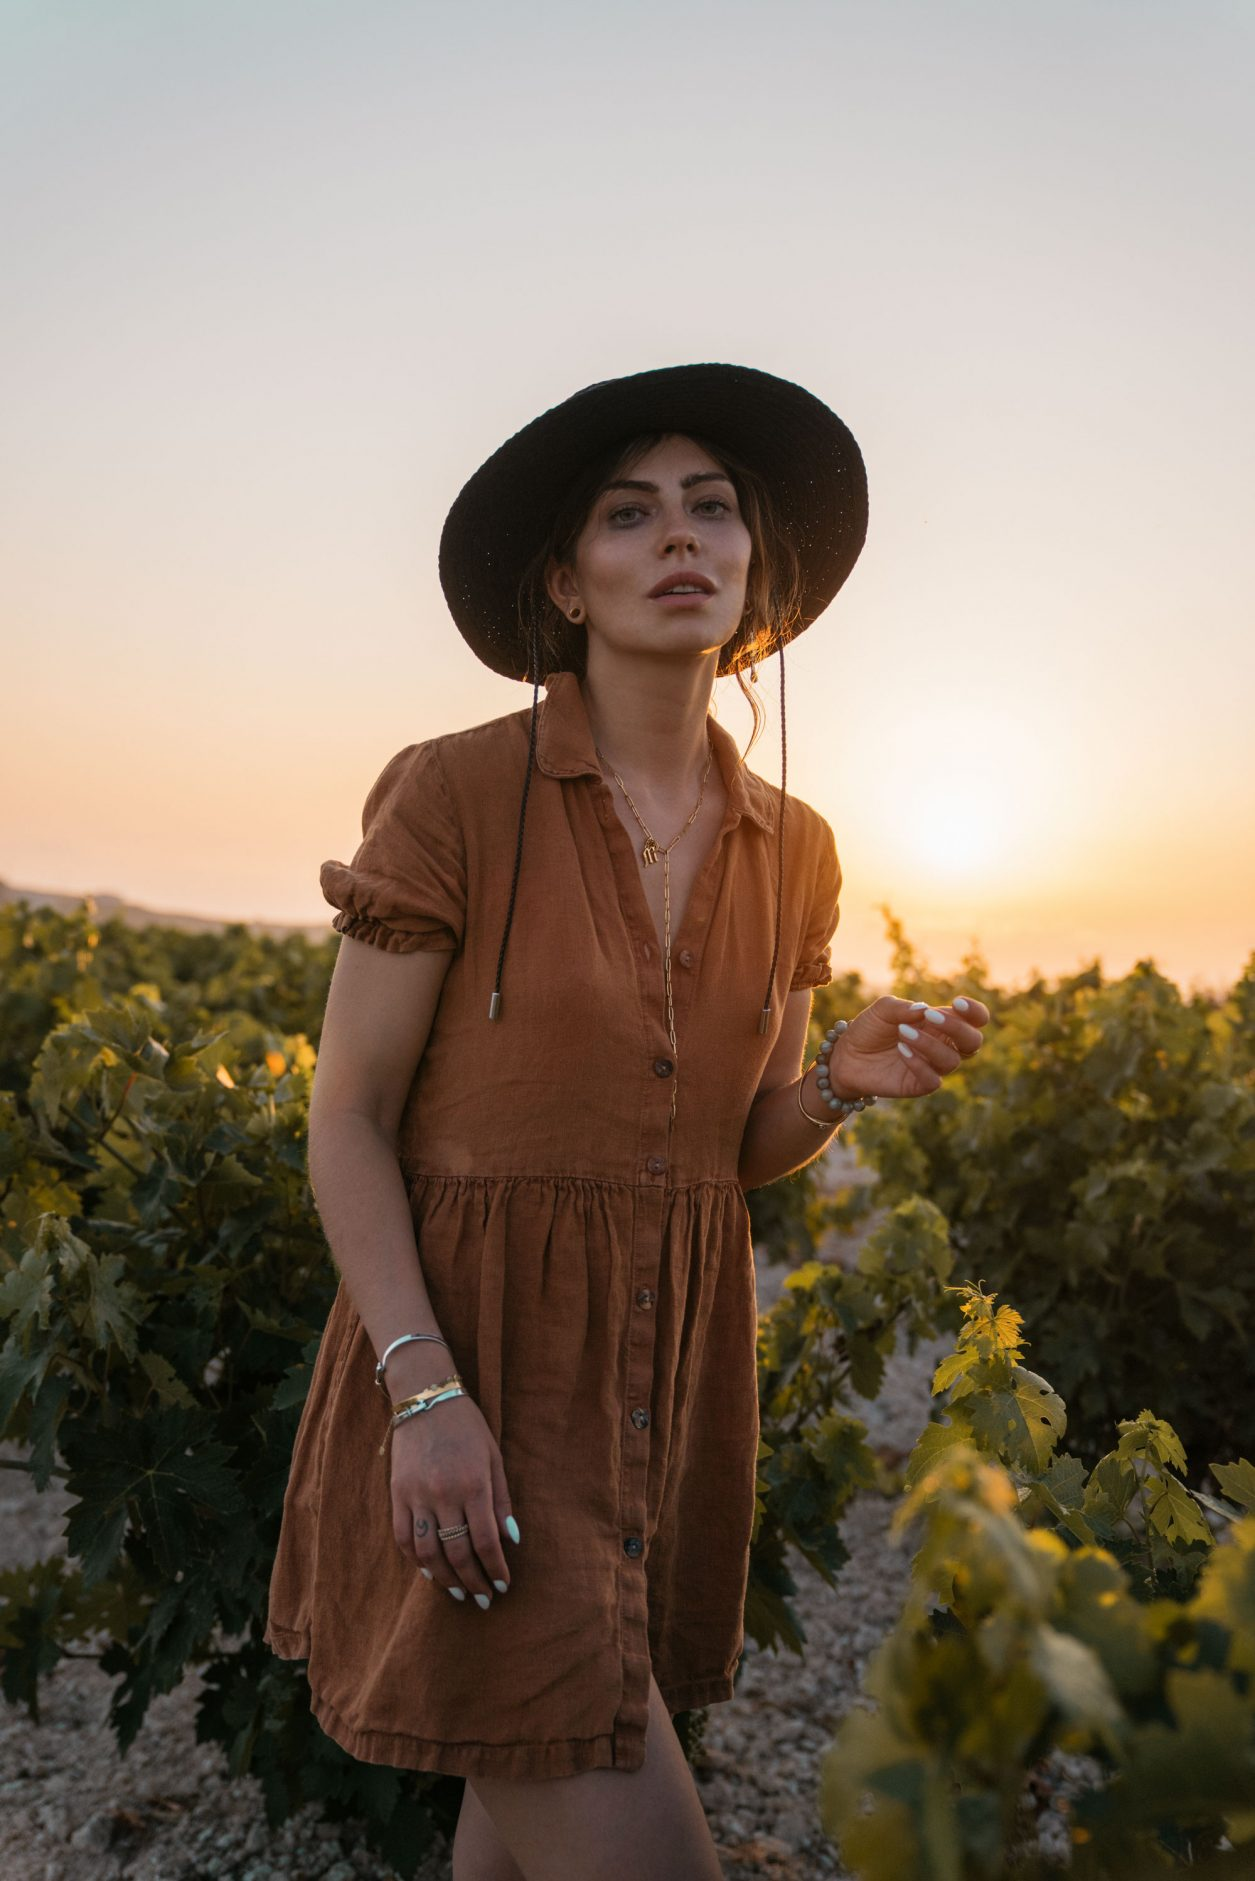 Walking on Sunshine |Fashion Editorial | Sonntagspost | Cyprus | column about consequence | Truth | personal thoughts | emotional summer vibes | sunset | 35mm